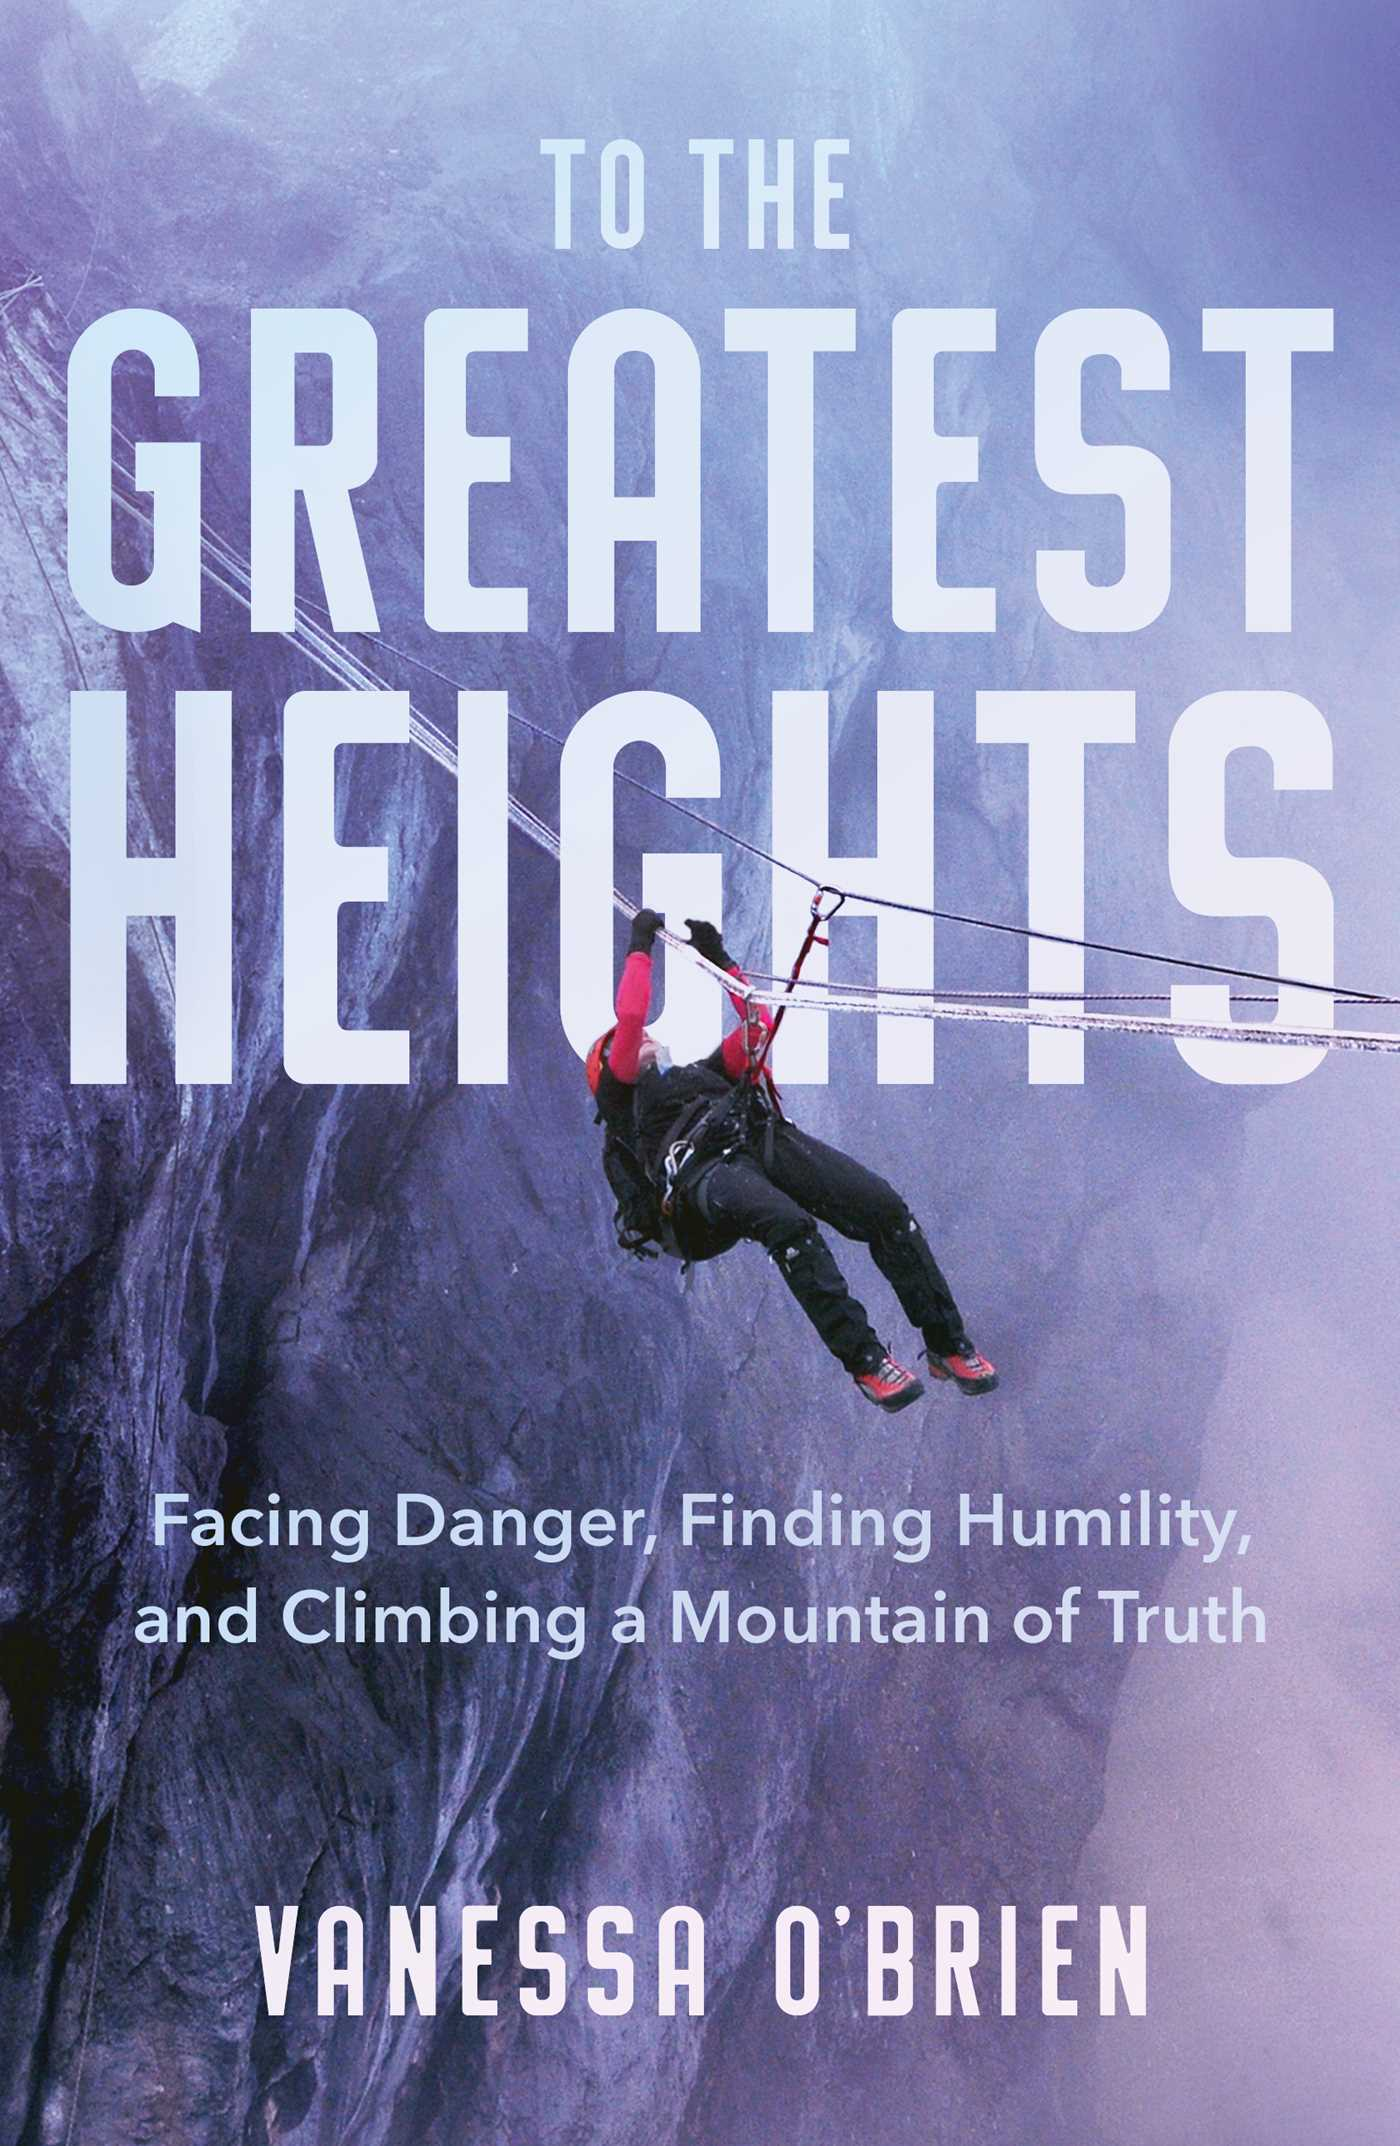 To the Greatest Heights: Facing Danger, Finding Humility, and Climbing a Mountain of Truth